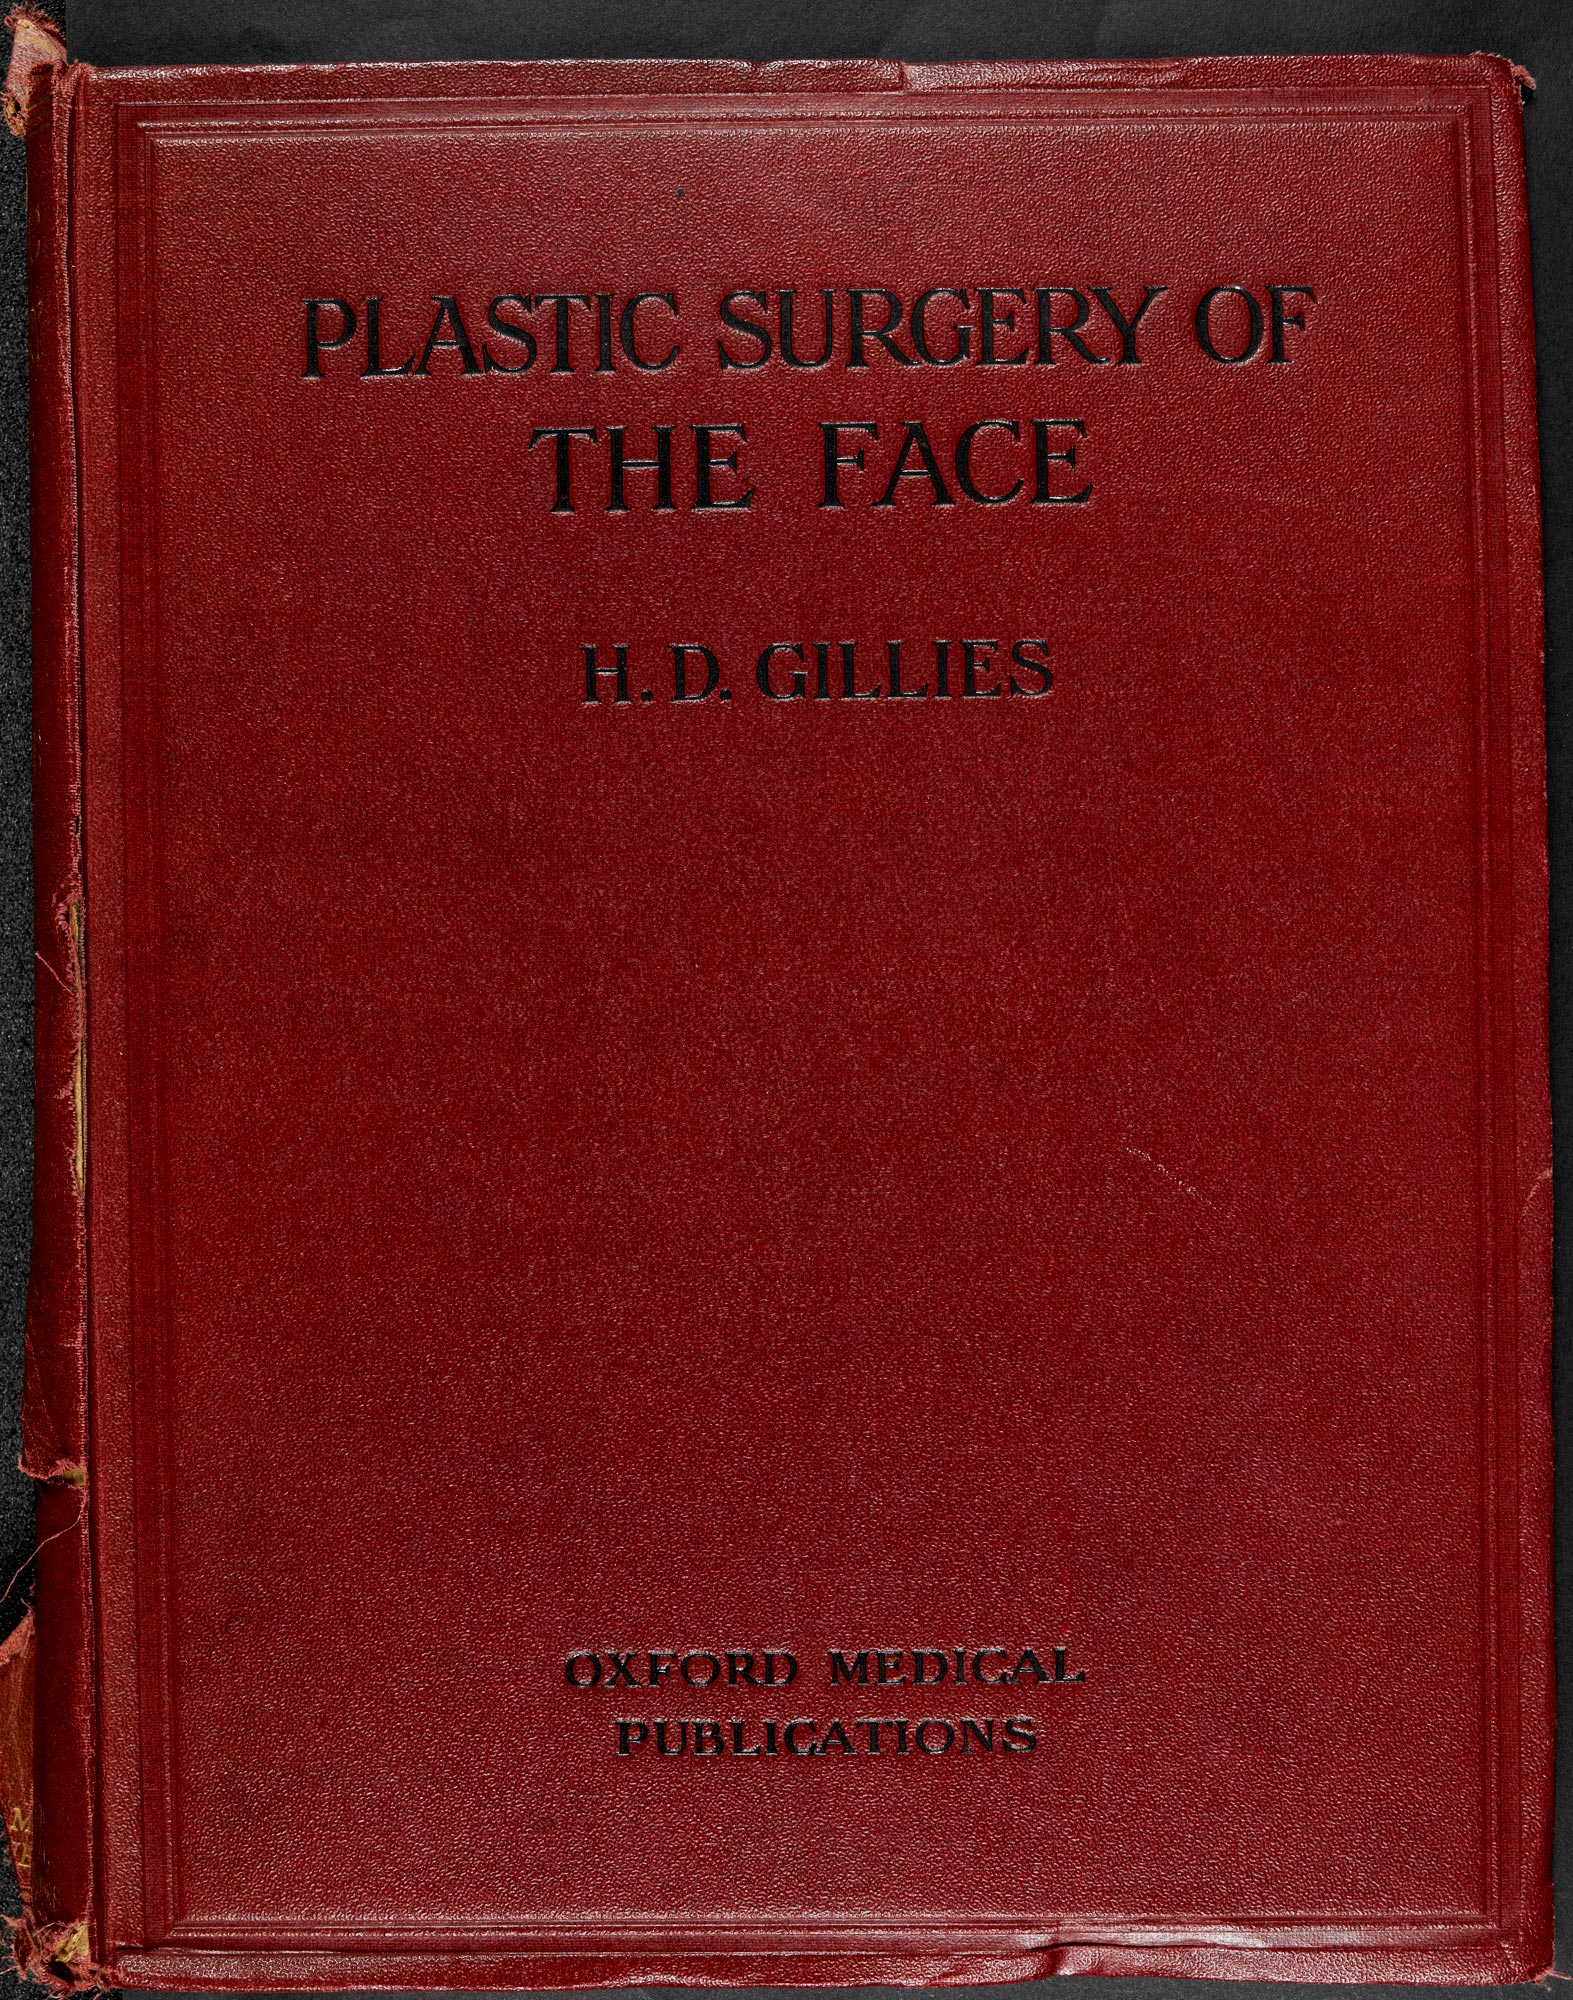 Harold Gillies' Plastic Surgery of the Face 1920